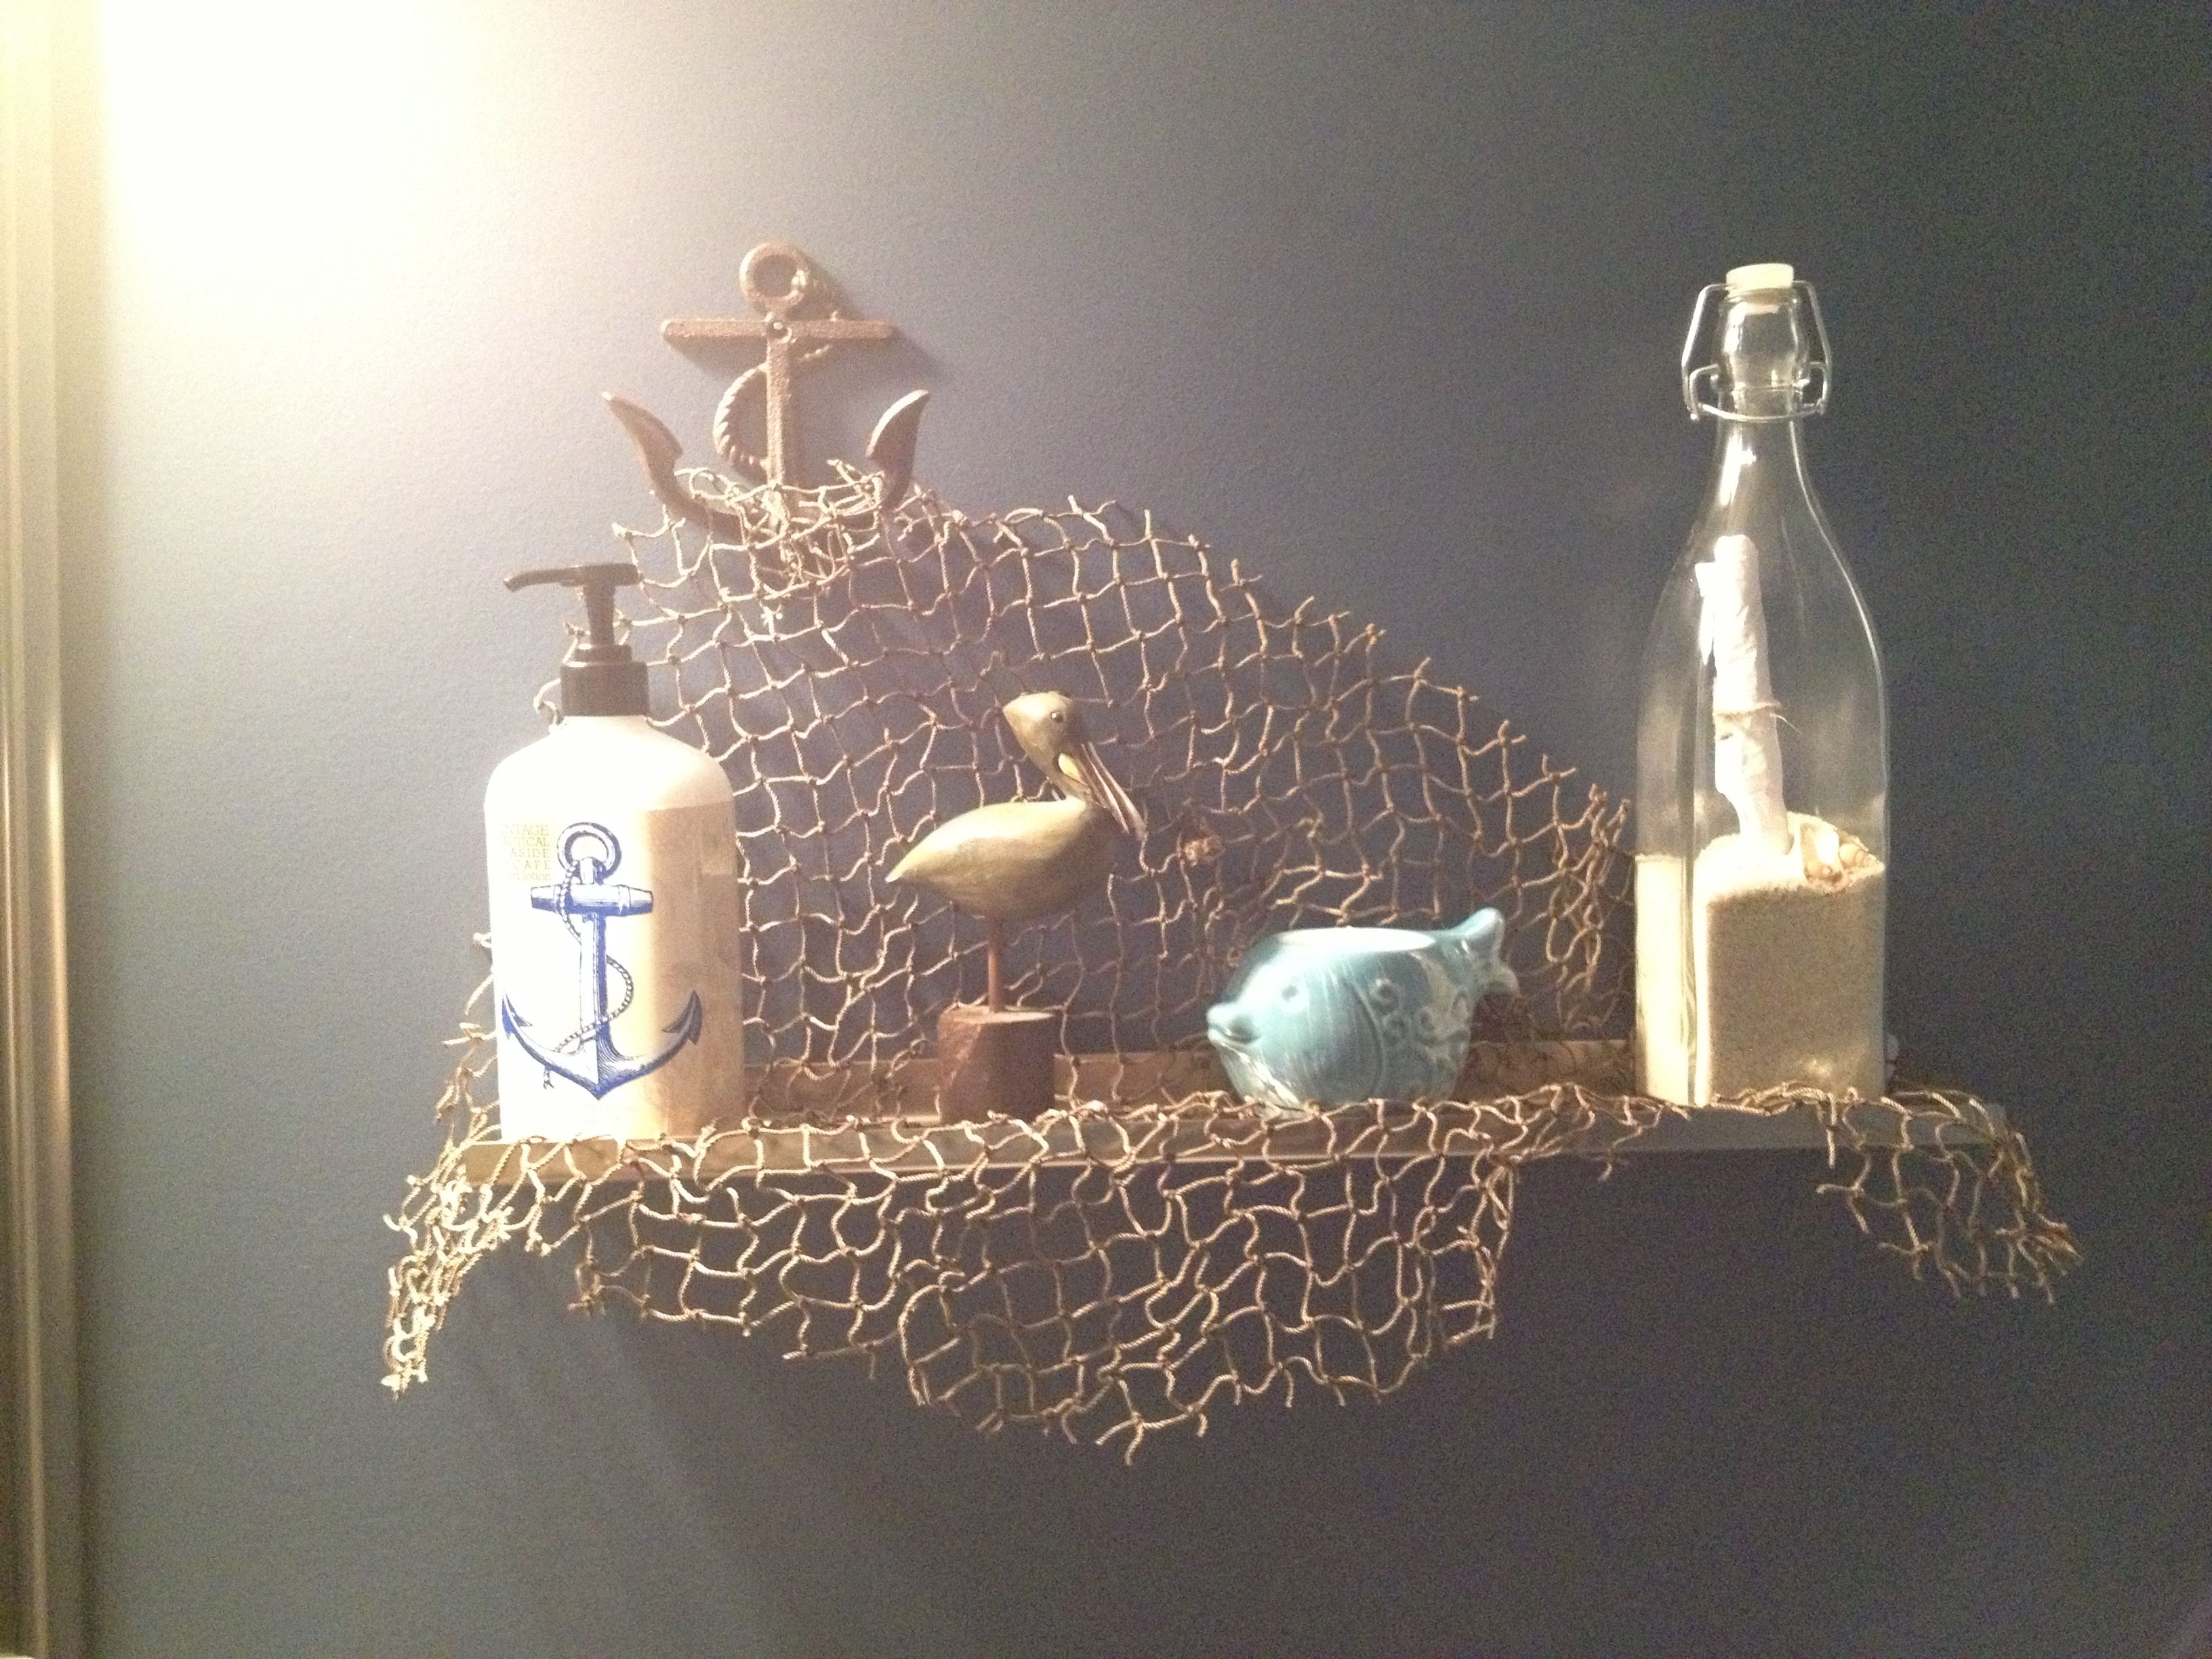 Nautical crafts to make - Cute Shelf Decor For A Nautical Bathroom Make Sure You Put A Real Message In